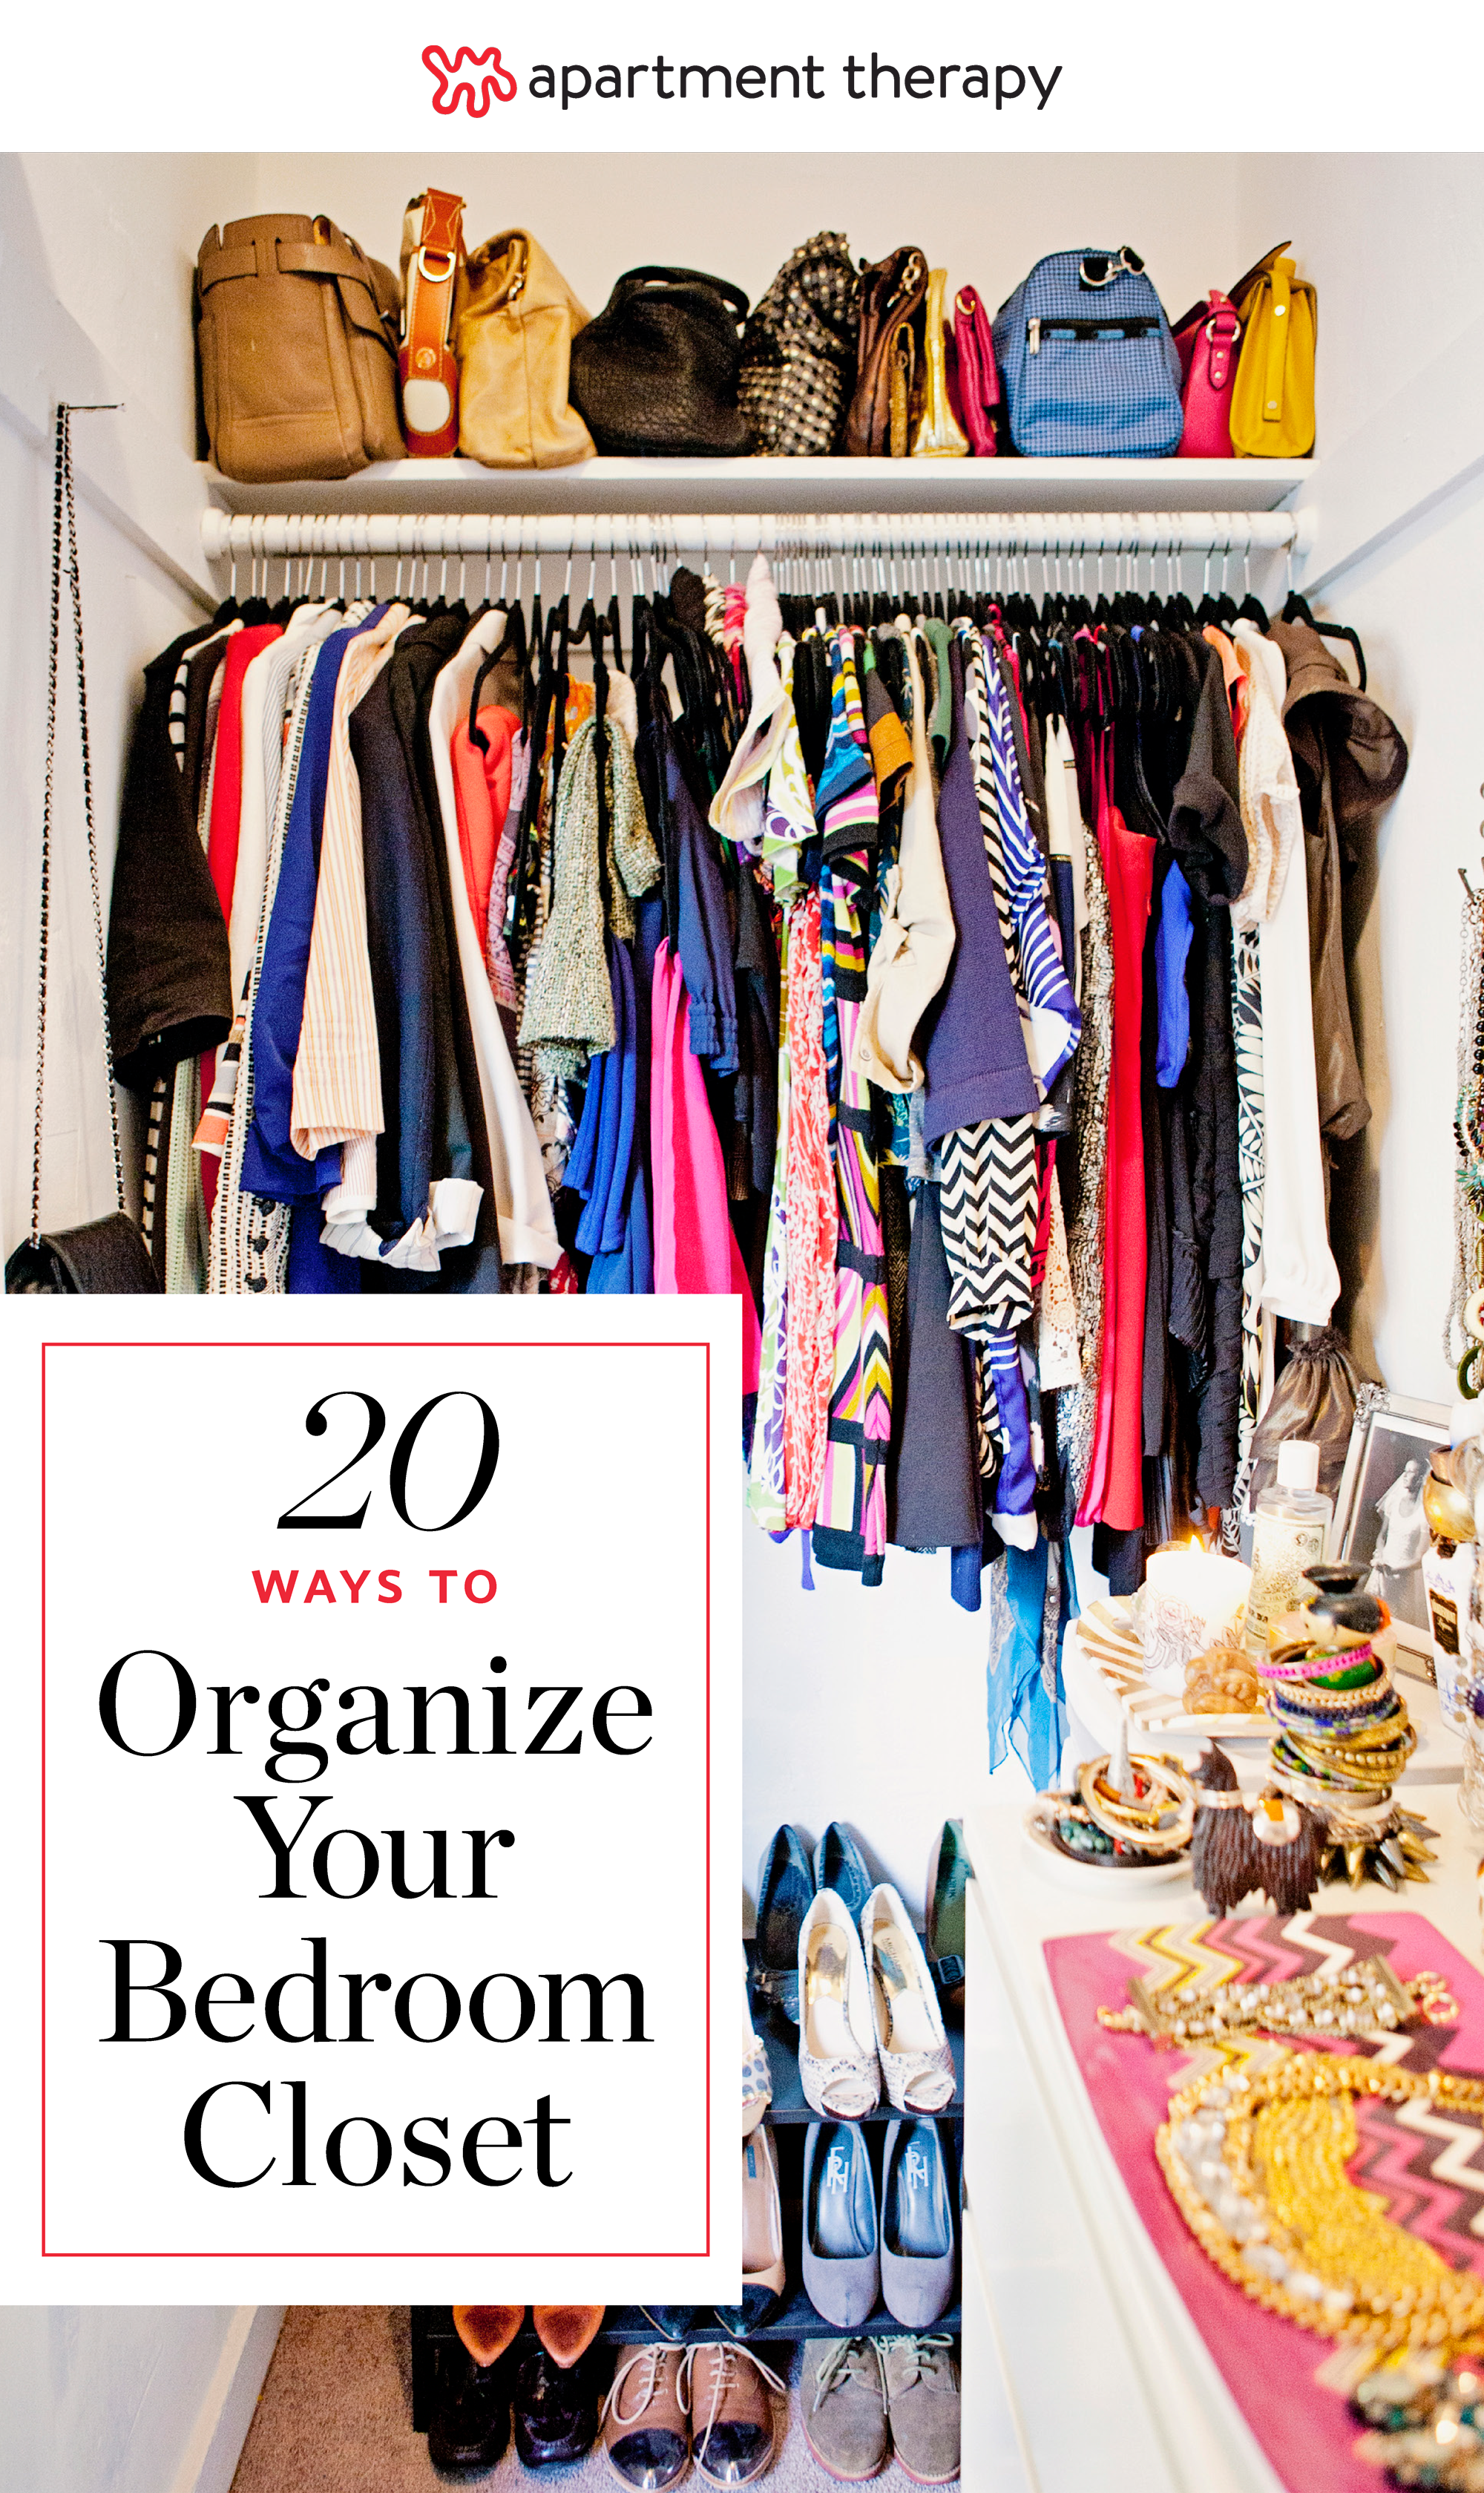 20 Ideas For Organizing Your Bedroom Closet Apartment Therapy,Bloody Mary